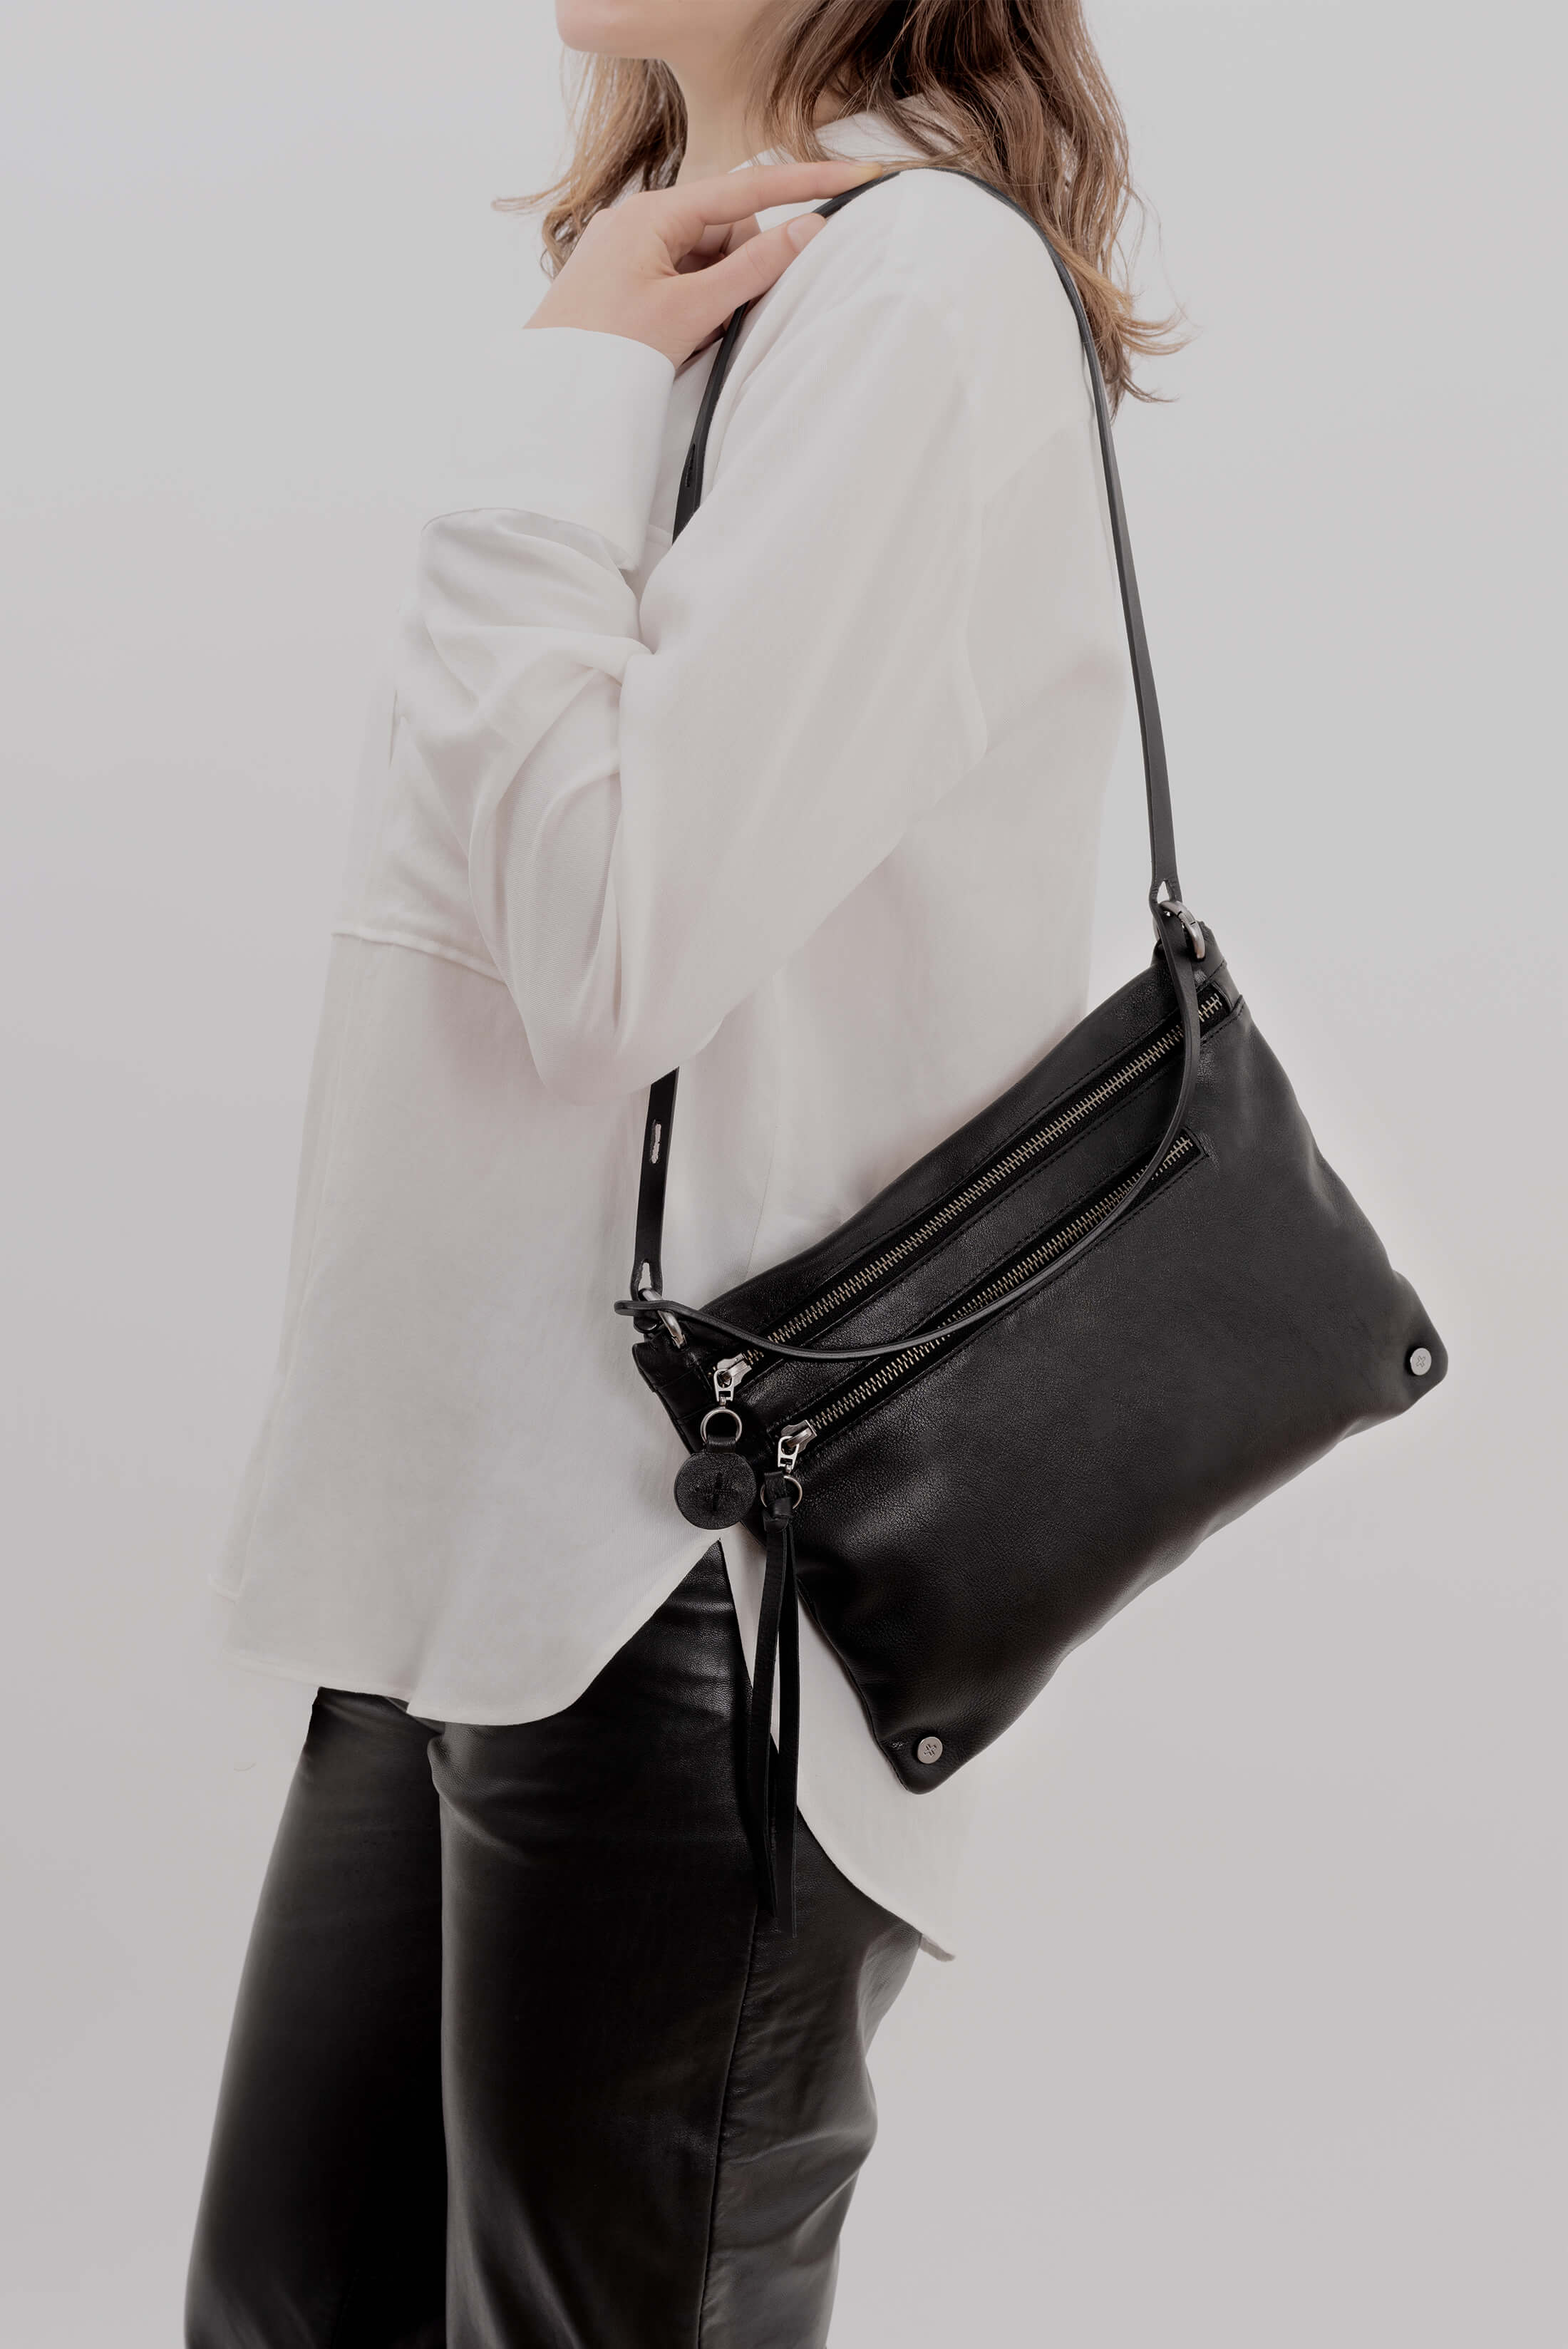 Ina Kent Crossbody Black Leather Handbag - MoMuse Jewellery